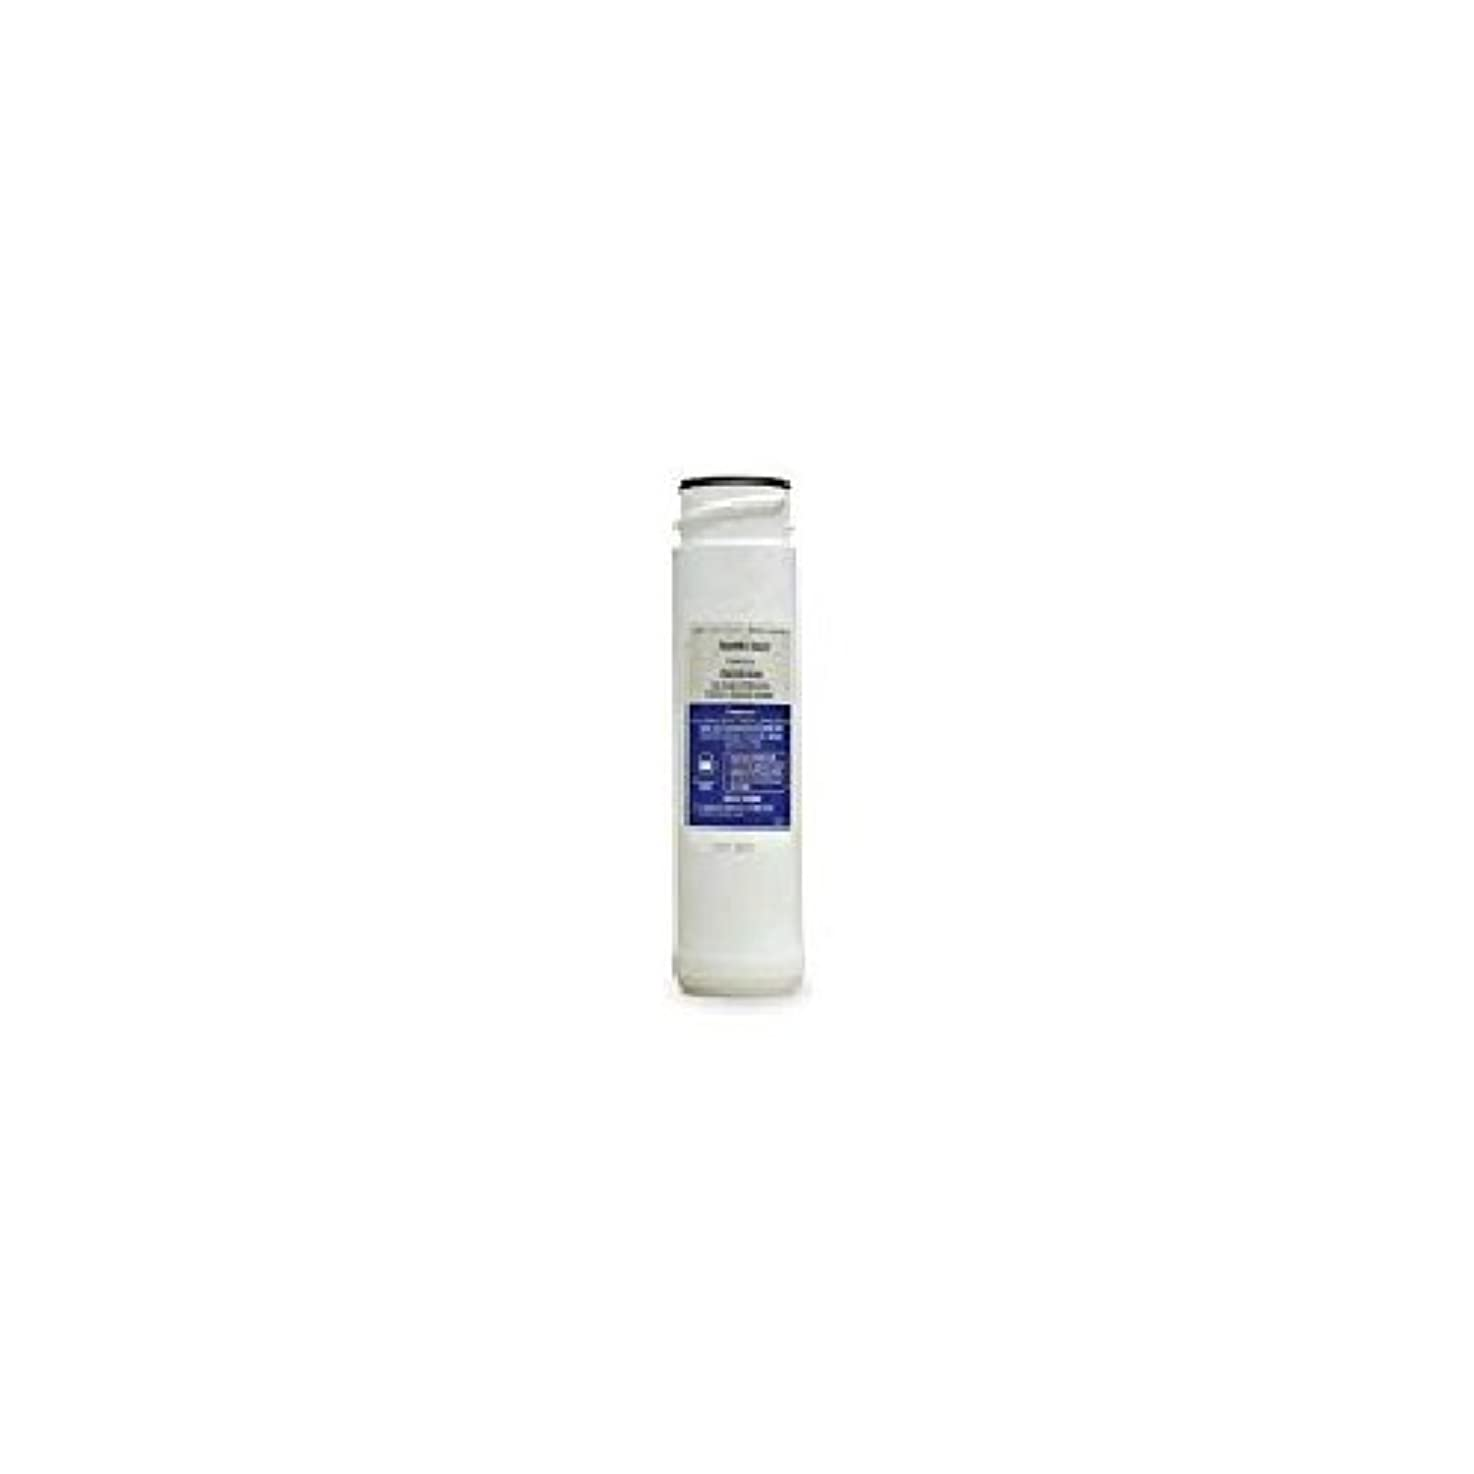 North Star 7287514 Replacement Membrane Cartridges for Reverse Osmosis System